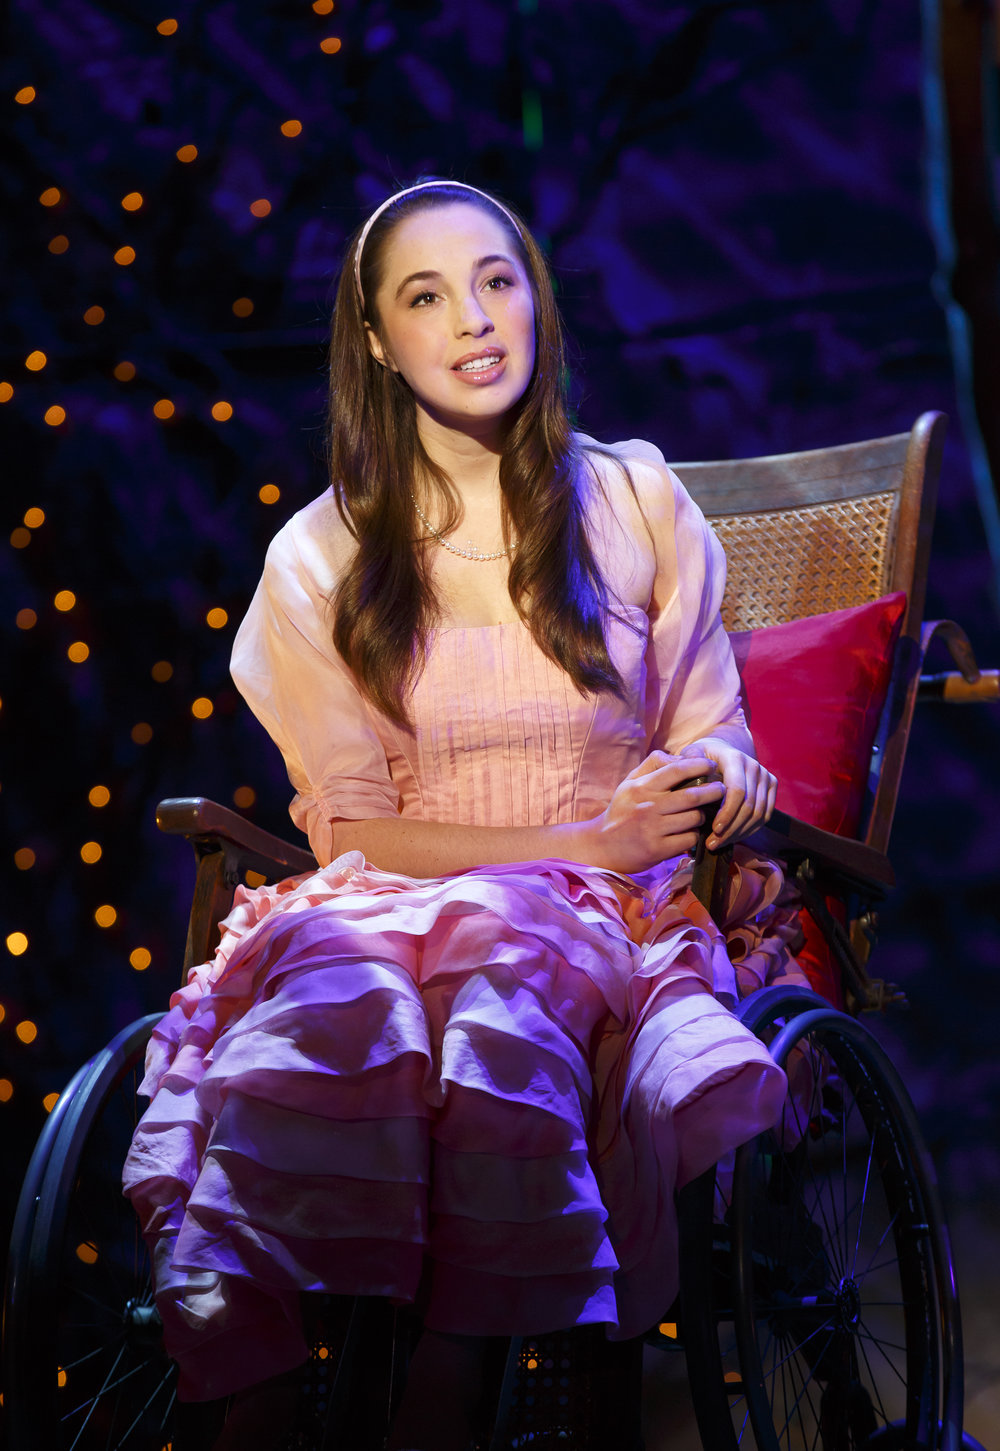 Jaime Rosenstein as Nessarose in Wicked